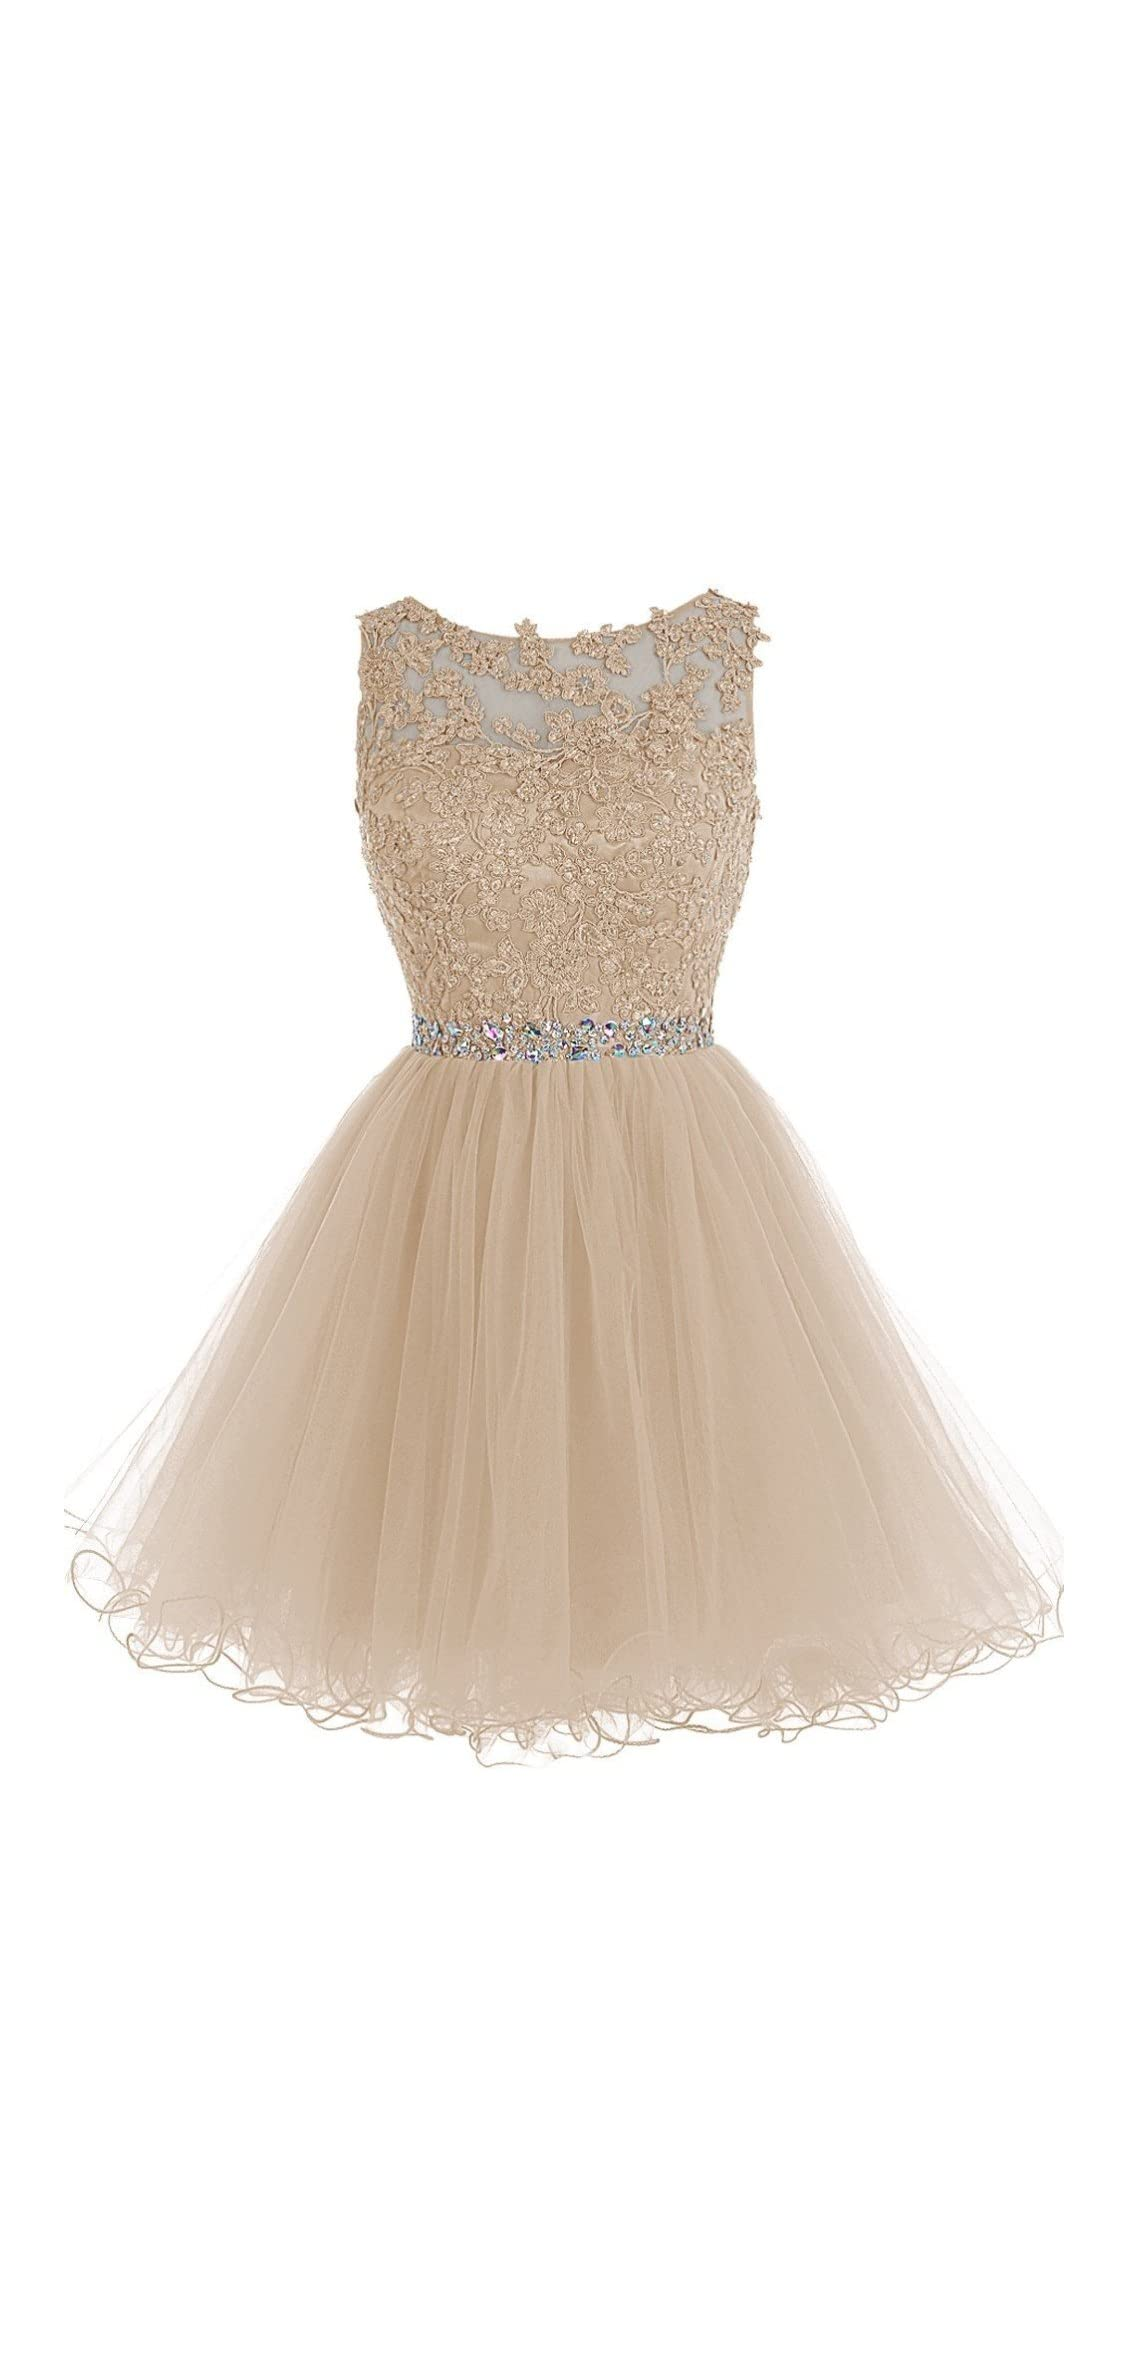 Women's Short Lace Homecoming Dresses Beaded Cocktail